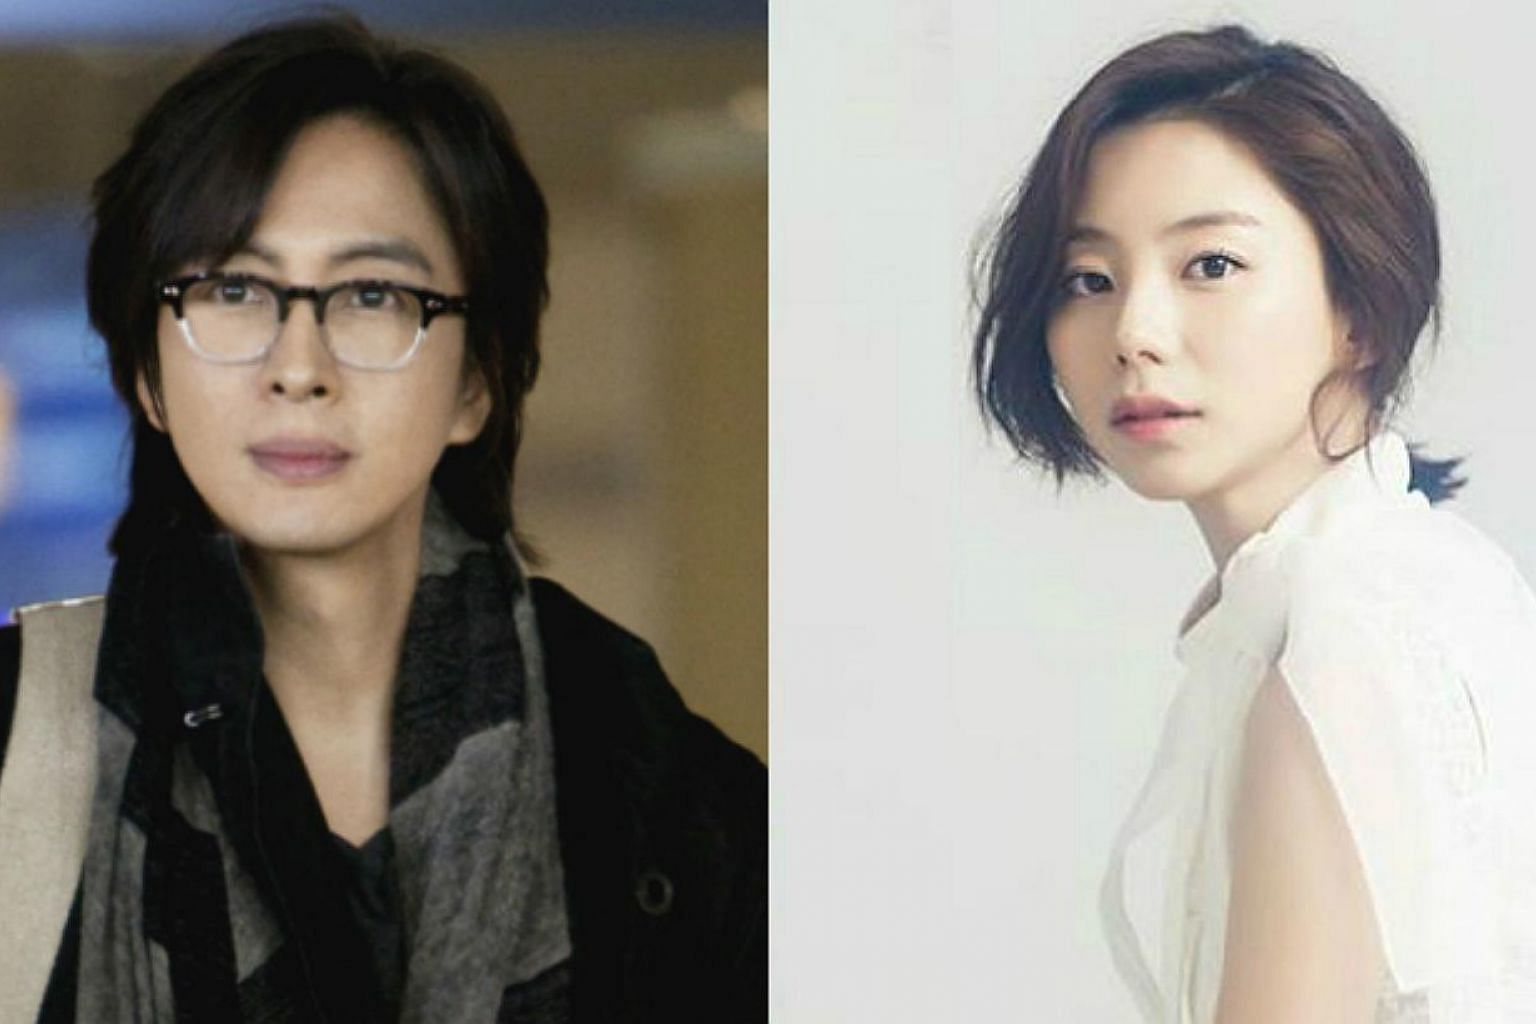 Bae Yong Joon, best known for his role in the drama Winter Sonata, started dating Park Soo Jin in February. -- PHOTO: KEYEAST ENTERTAINMENT/ FACEBOOK